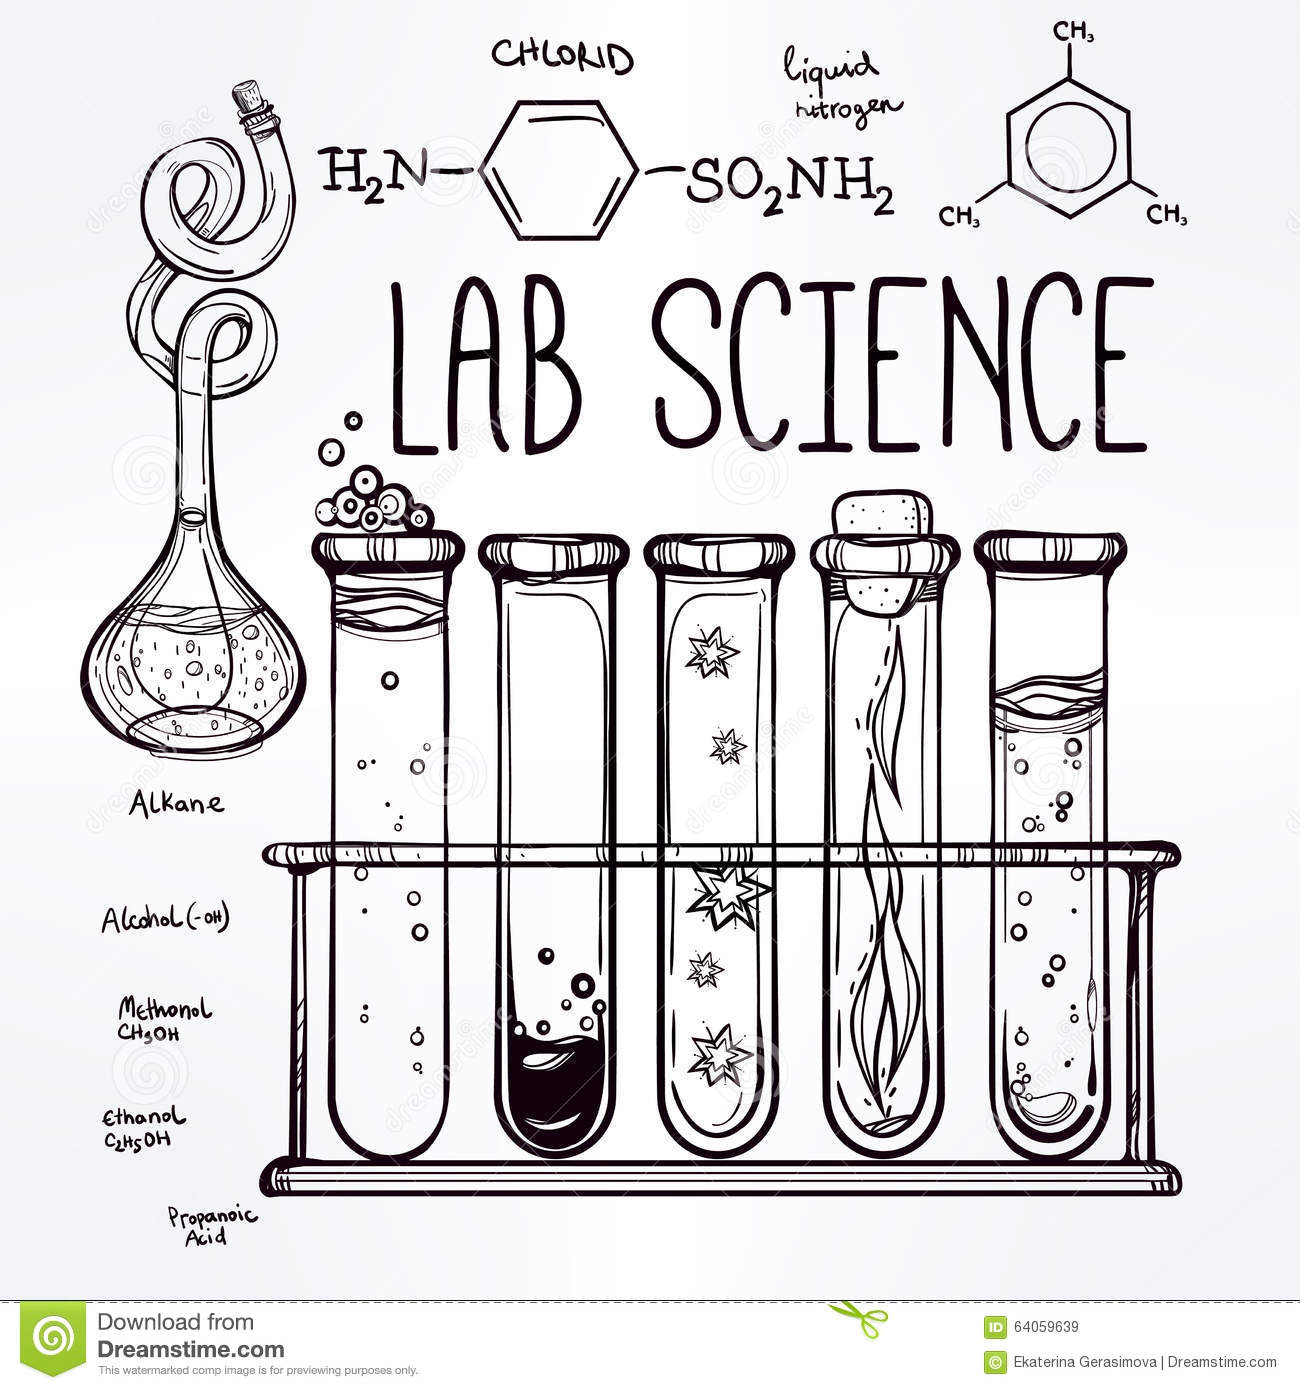 Hand Drawn Cool Science Beautiful Laboratory 267679292 as well Kolben Mit Blattern Umriss 747254 further Stock Illustration Education Icon Doodle Seamless School Wallpaper Microscope Notebook Chemical Formula Vector Illustration Image41199524 furthermore Black And White Medication Bottle YsDGfUuZiW56EskzUfa6jplpe3sNRno 7CoKe 7CNkipFx 7CZWH7RIB8ZOEMbDEpMaNOQeSghsOeaaOTDUivoFHULAQ furthermore Stock Illustration Learning School Education Icons Back To Icon Set Image43402123. on flask icon